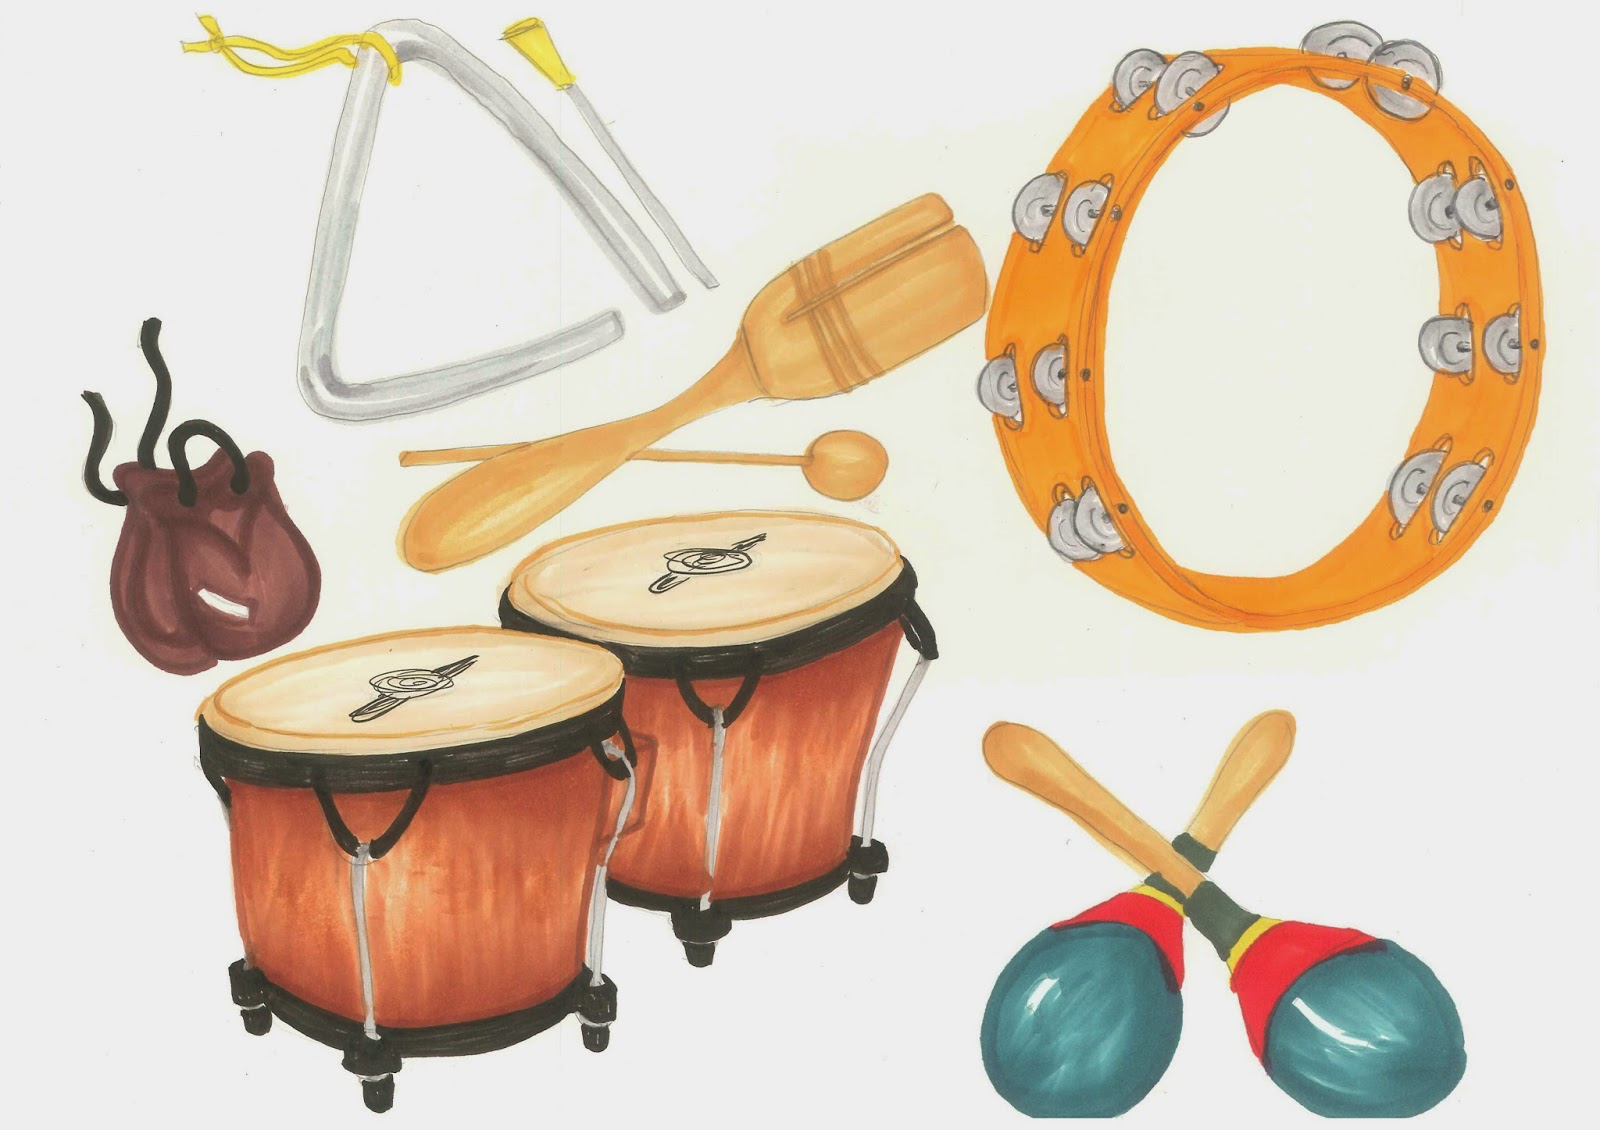 Free Clipart Class Instruments Free.